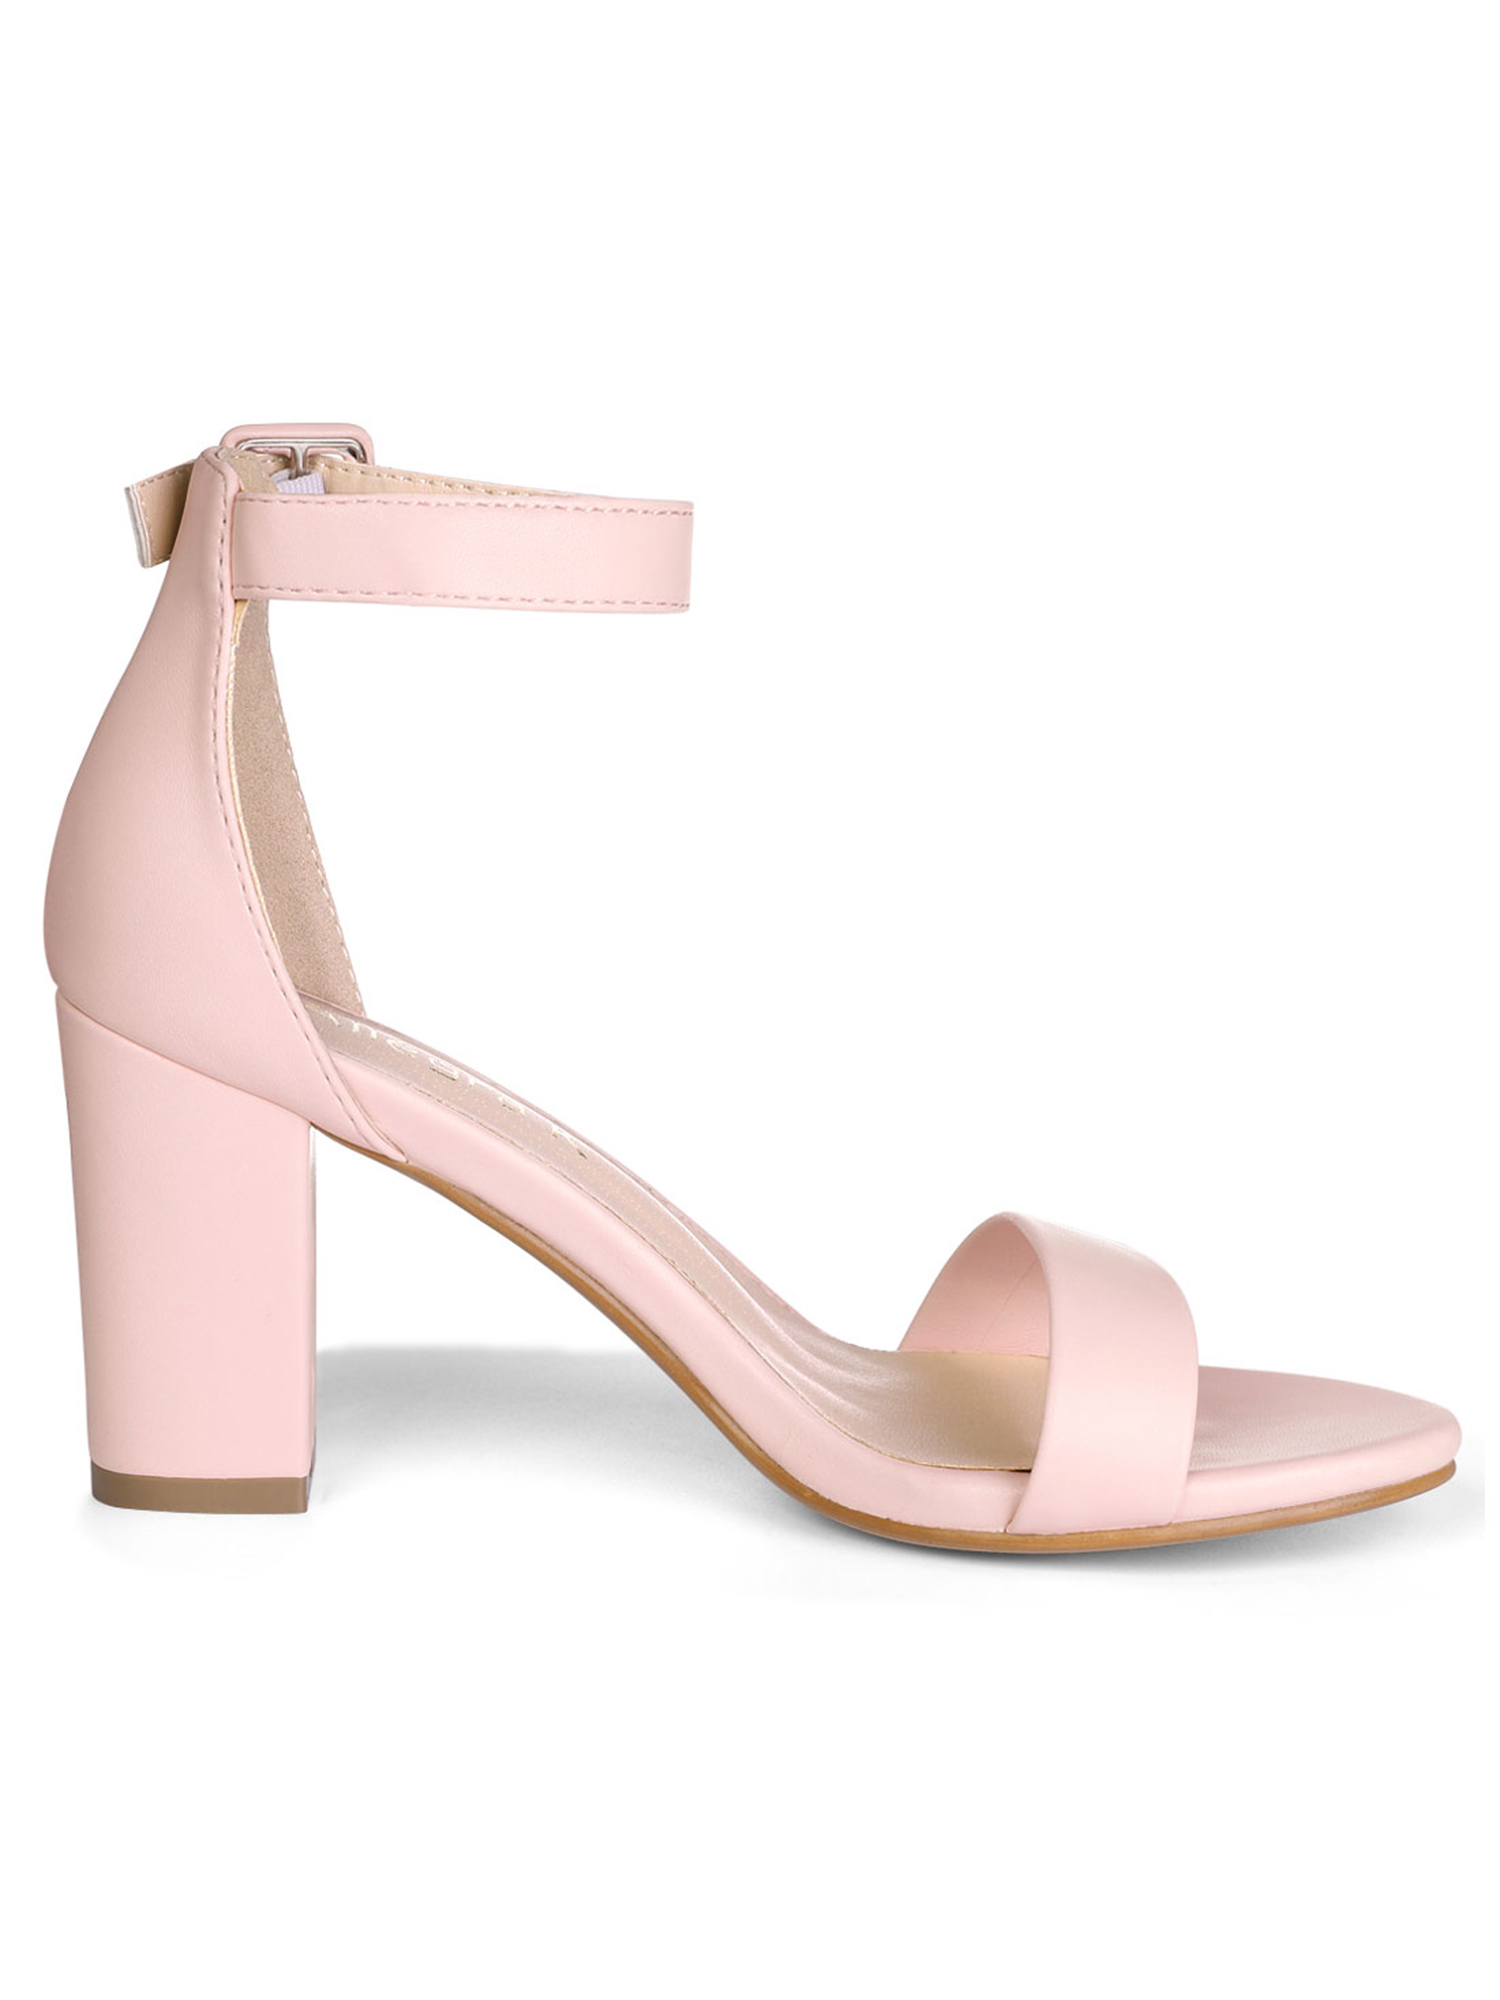 d09d58f776a8 Unique Bargains Women s Chunky High Heeled Open Toe Ankle Strap Sandals  Light Pink (Size 6.5)